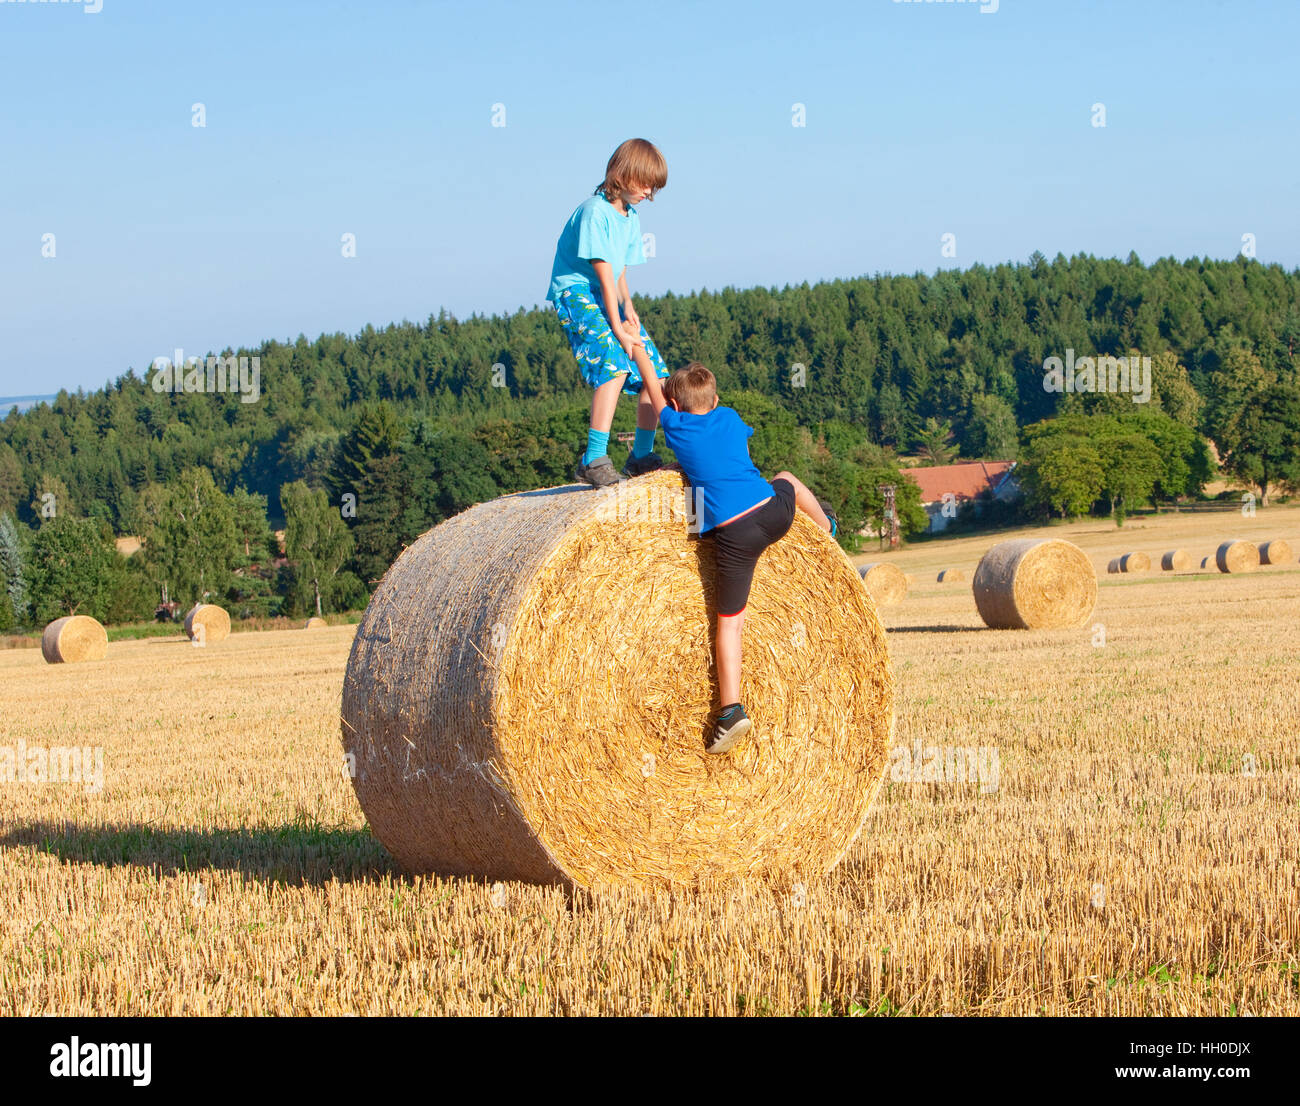 Two Boys Helping Each Other to Climb a Bale of Hay - Stock Image